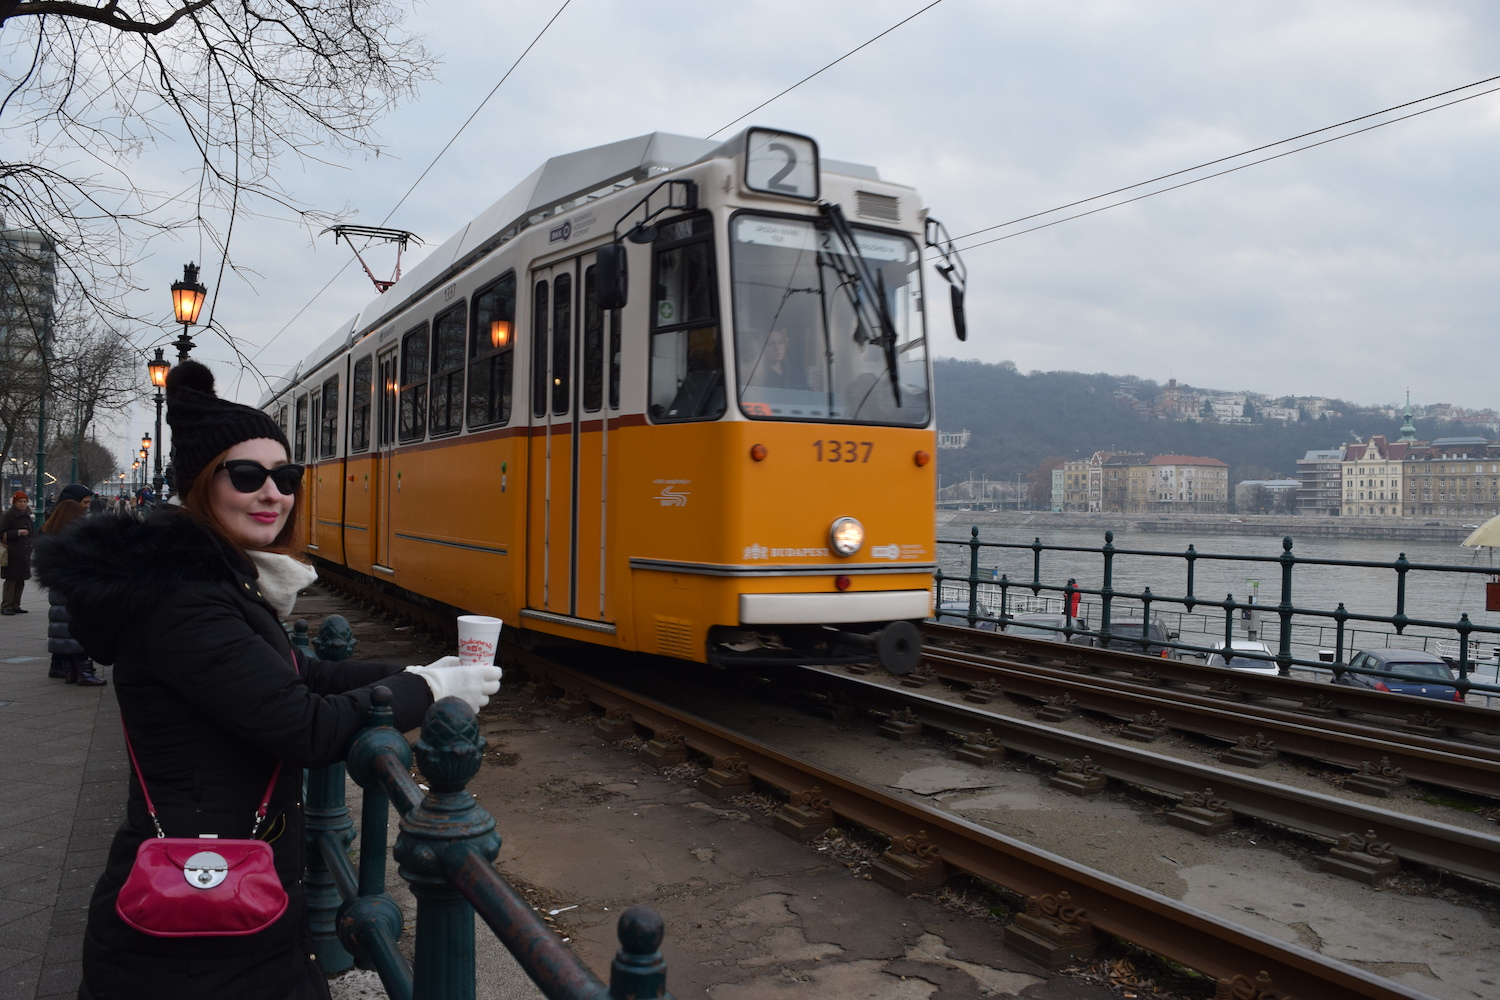 This isn't actually the metro. The photos I took were rushed and not worth of uploading, so I thought a pic of a tram would suffice...